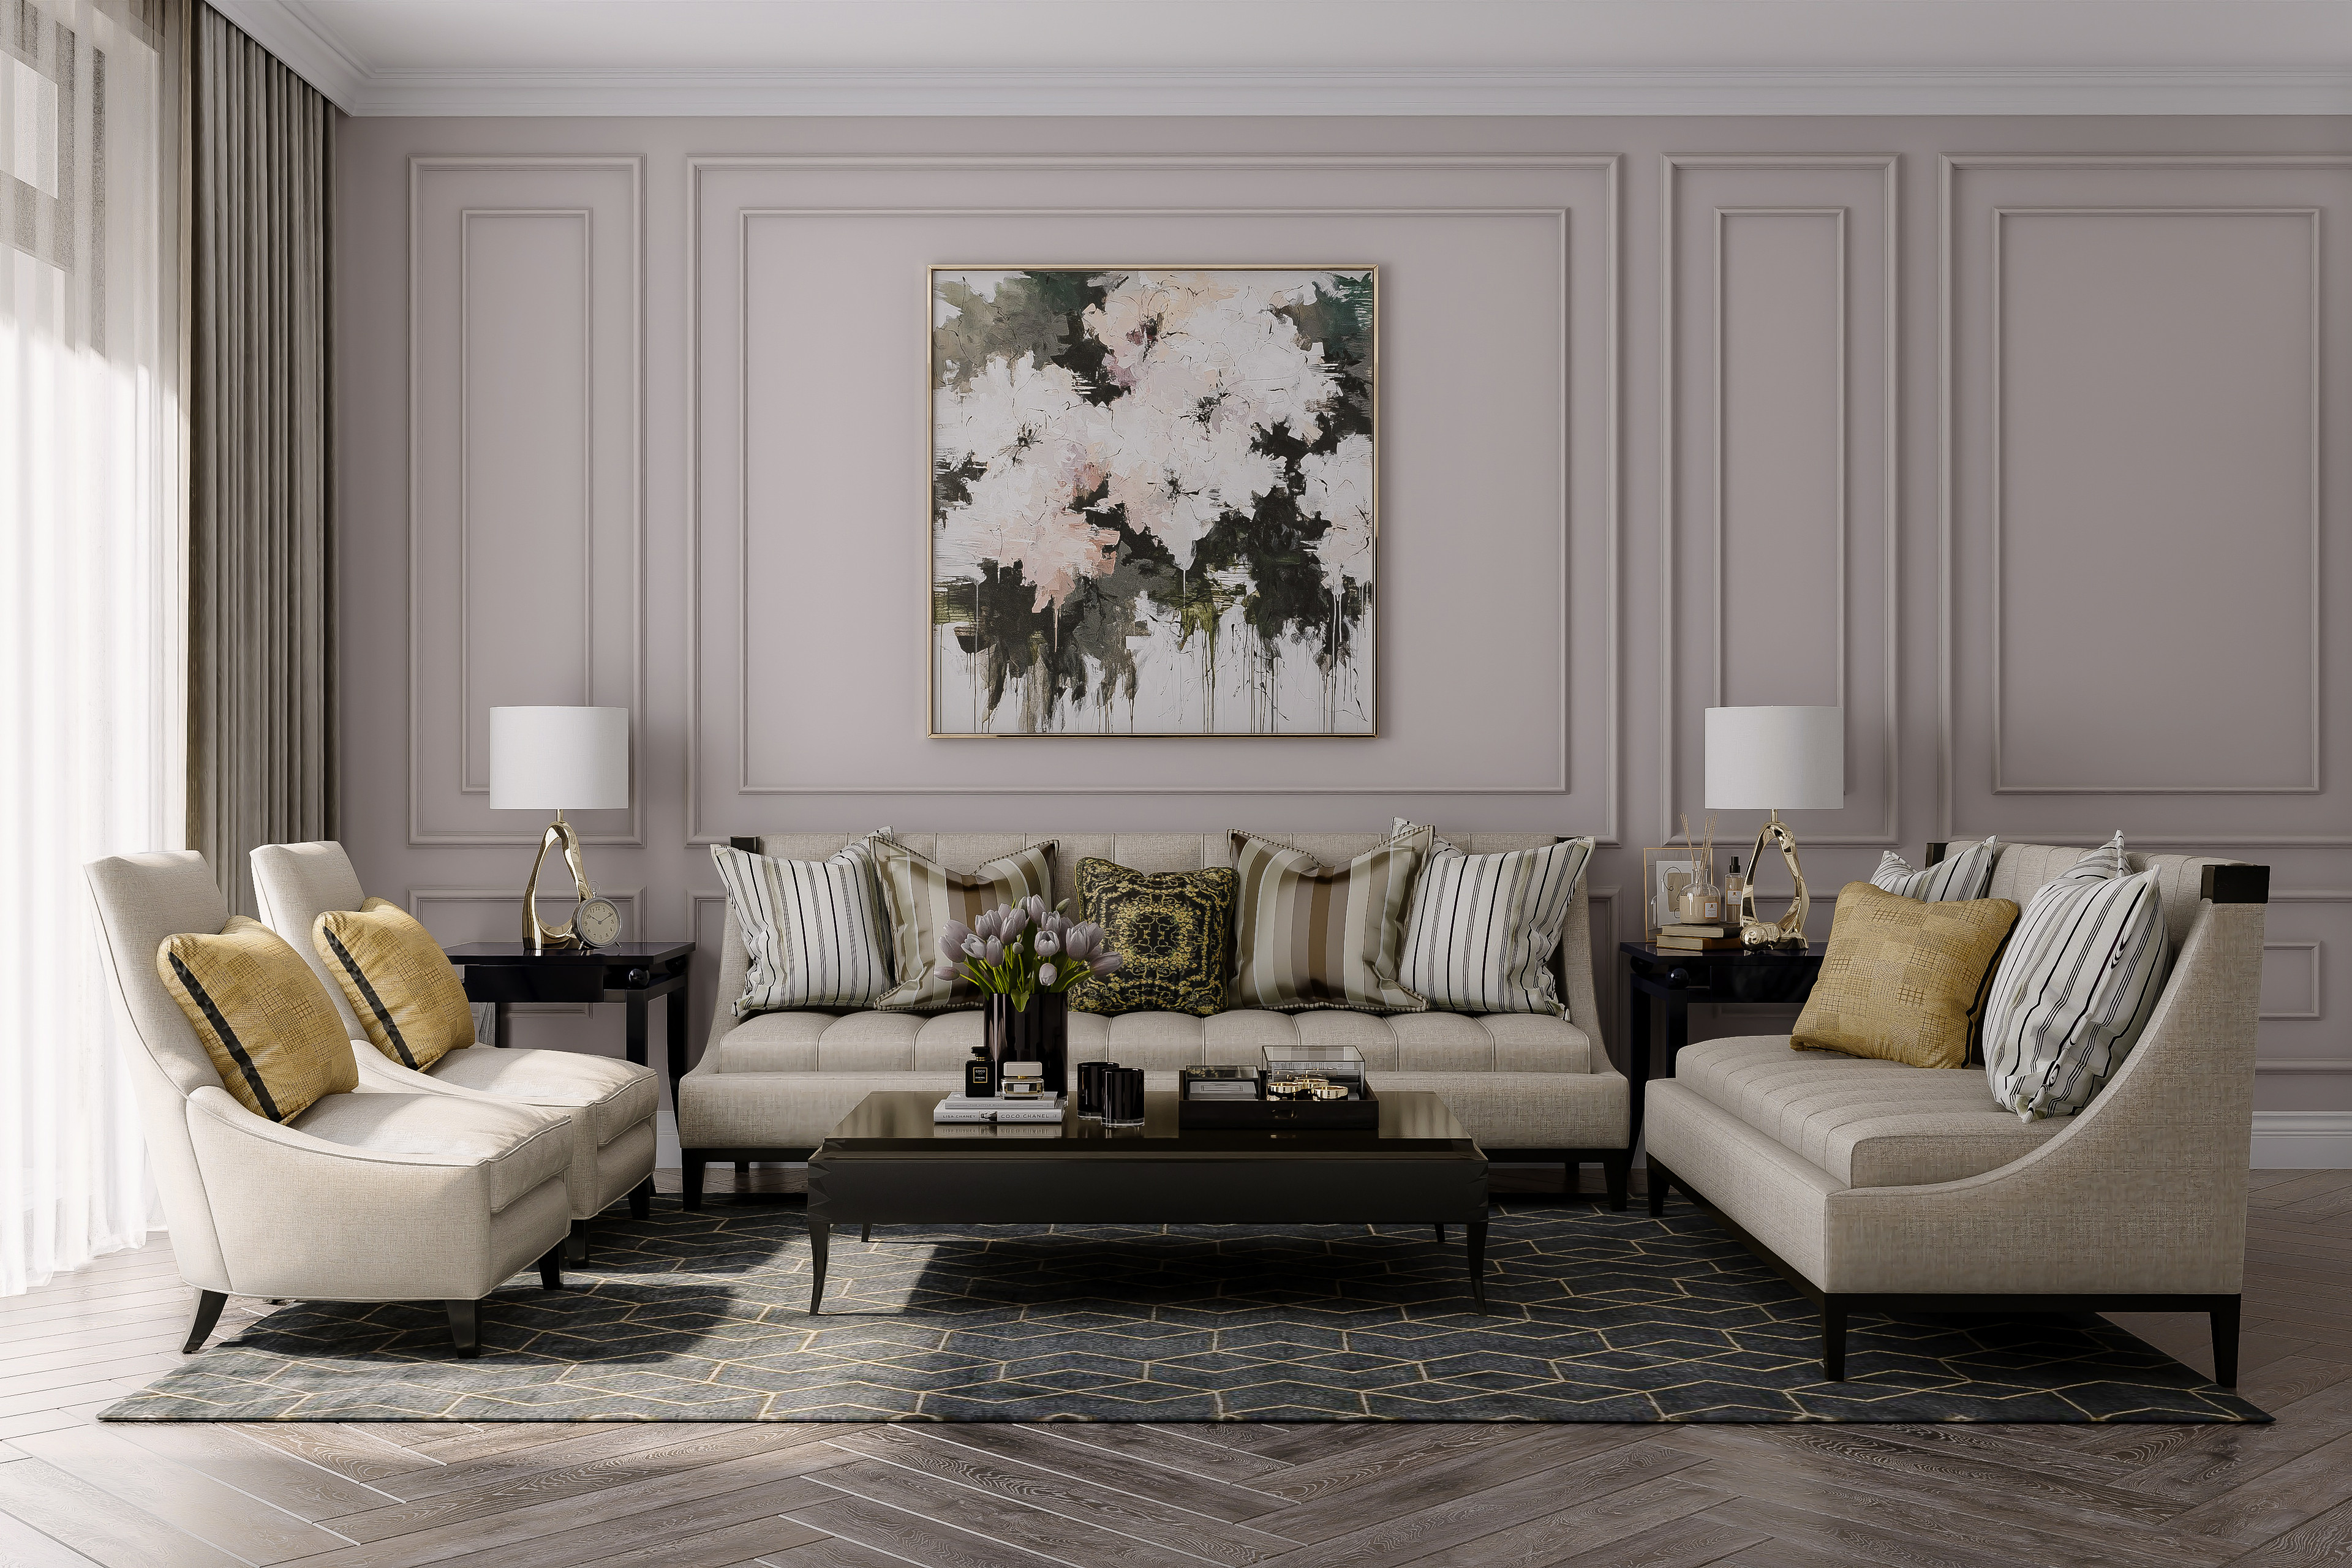 Living Room, Mid Day Light Study 3ds Max V-Ray Photoshop Free Asset: 3D Zip Materials and Lighting Rendering Lente Scura 5SRW - Learning V-Ray Method